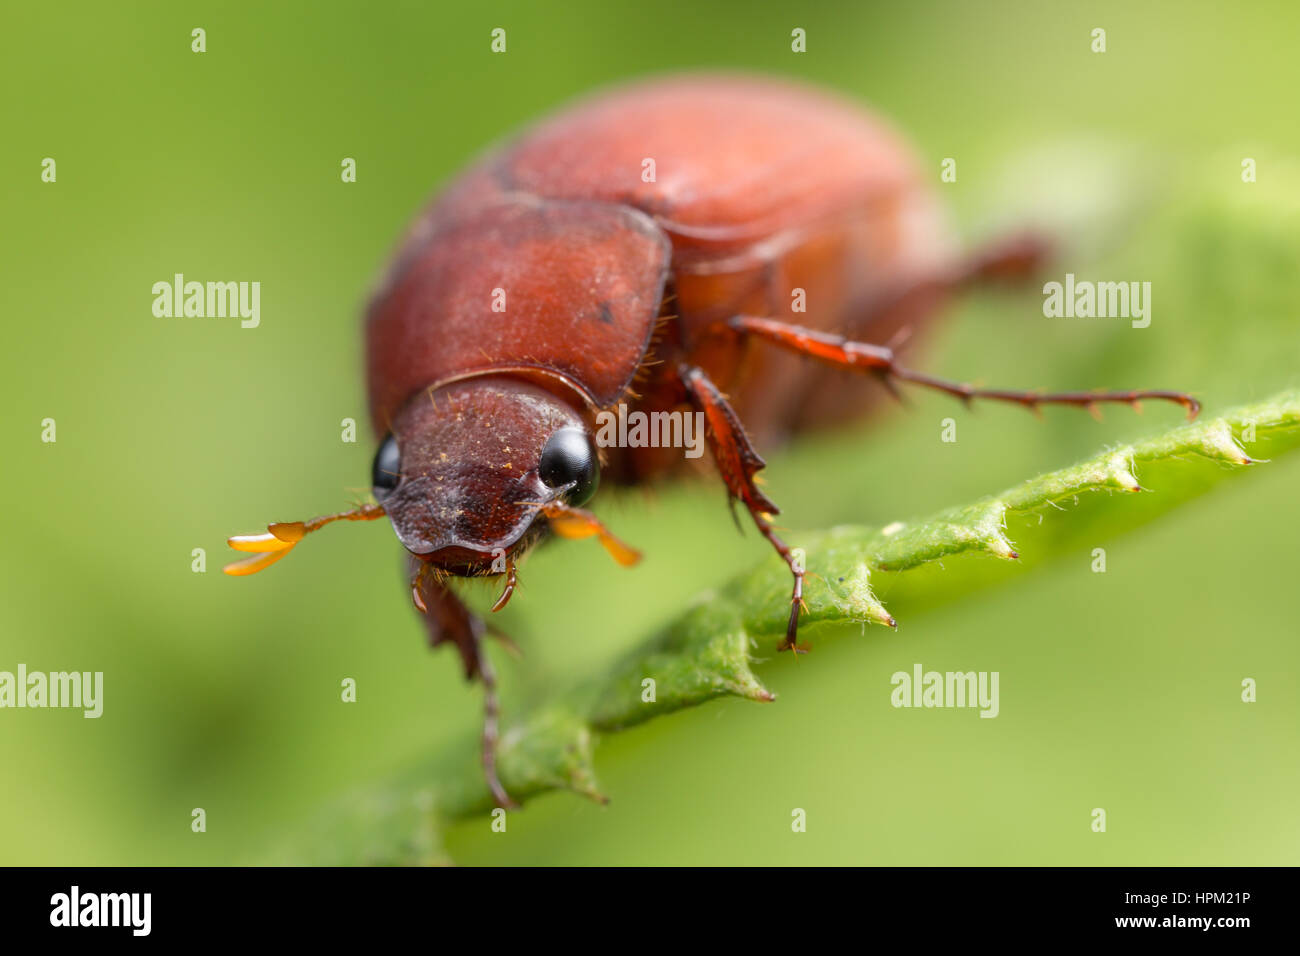 A frontal view of an Asiatic Garden Beetle (Maladera castanea) - Stock Image